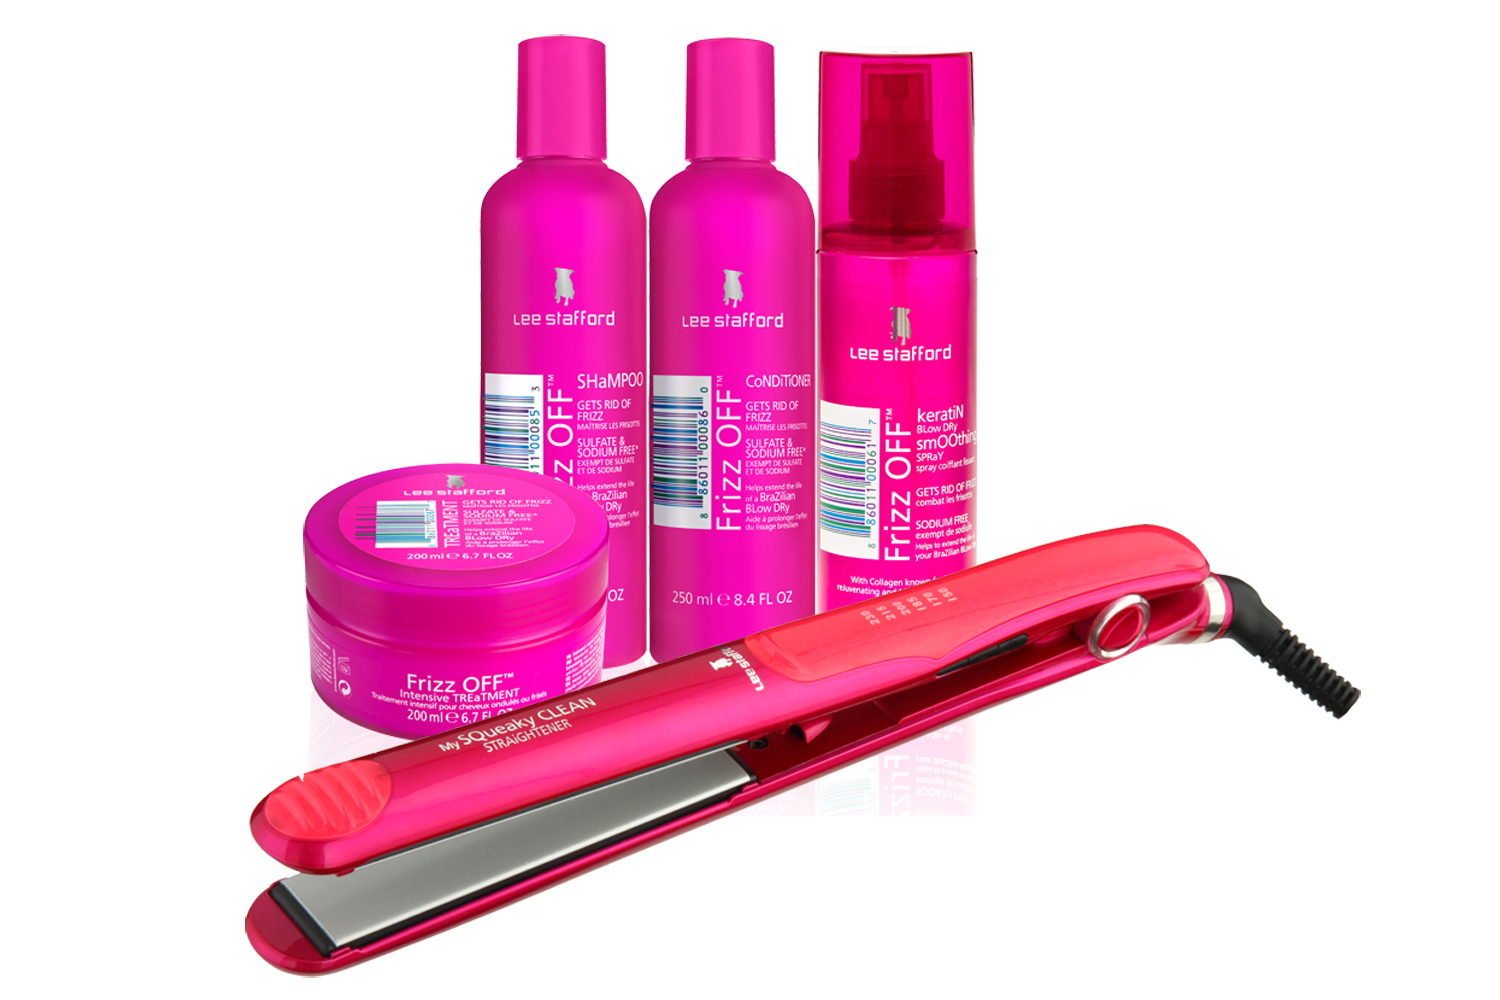 Friday Treat Competition Win Lee Stafford Frizz Off Hair Sets